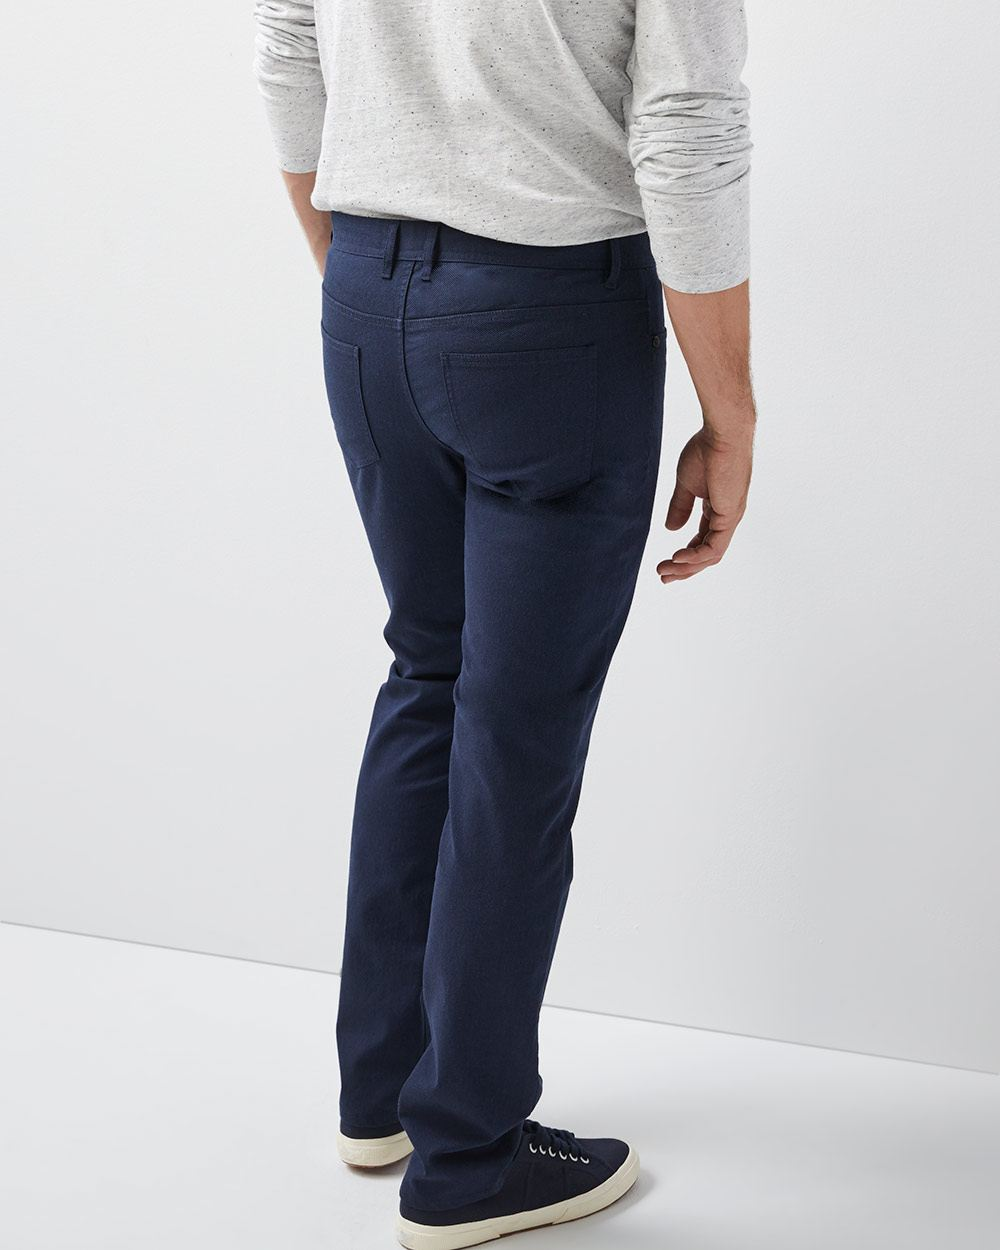 Slim fit Textured 5-pocket pant - 34''